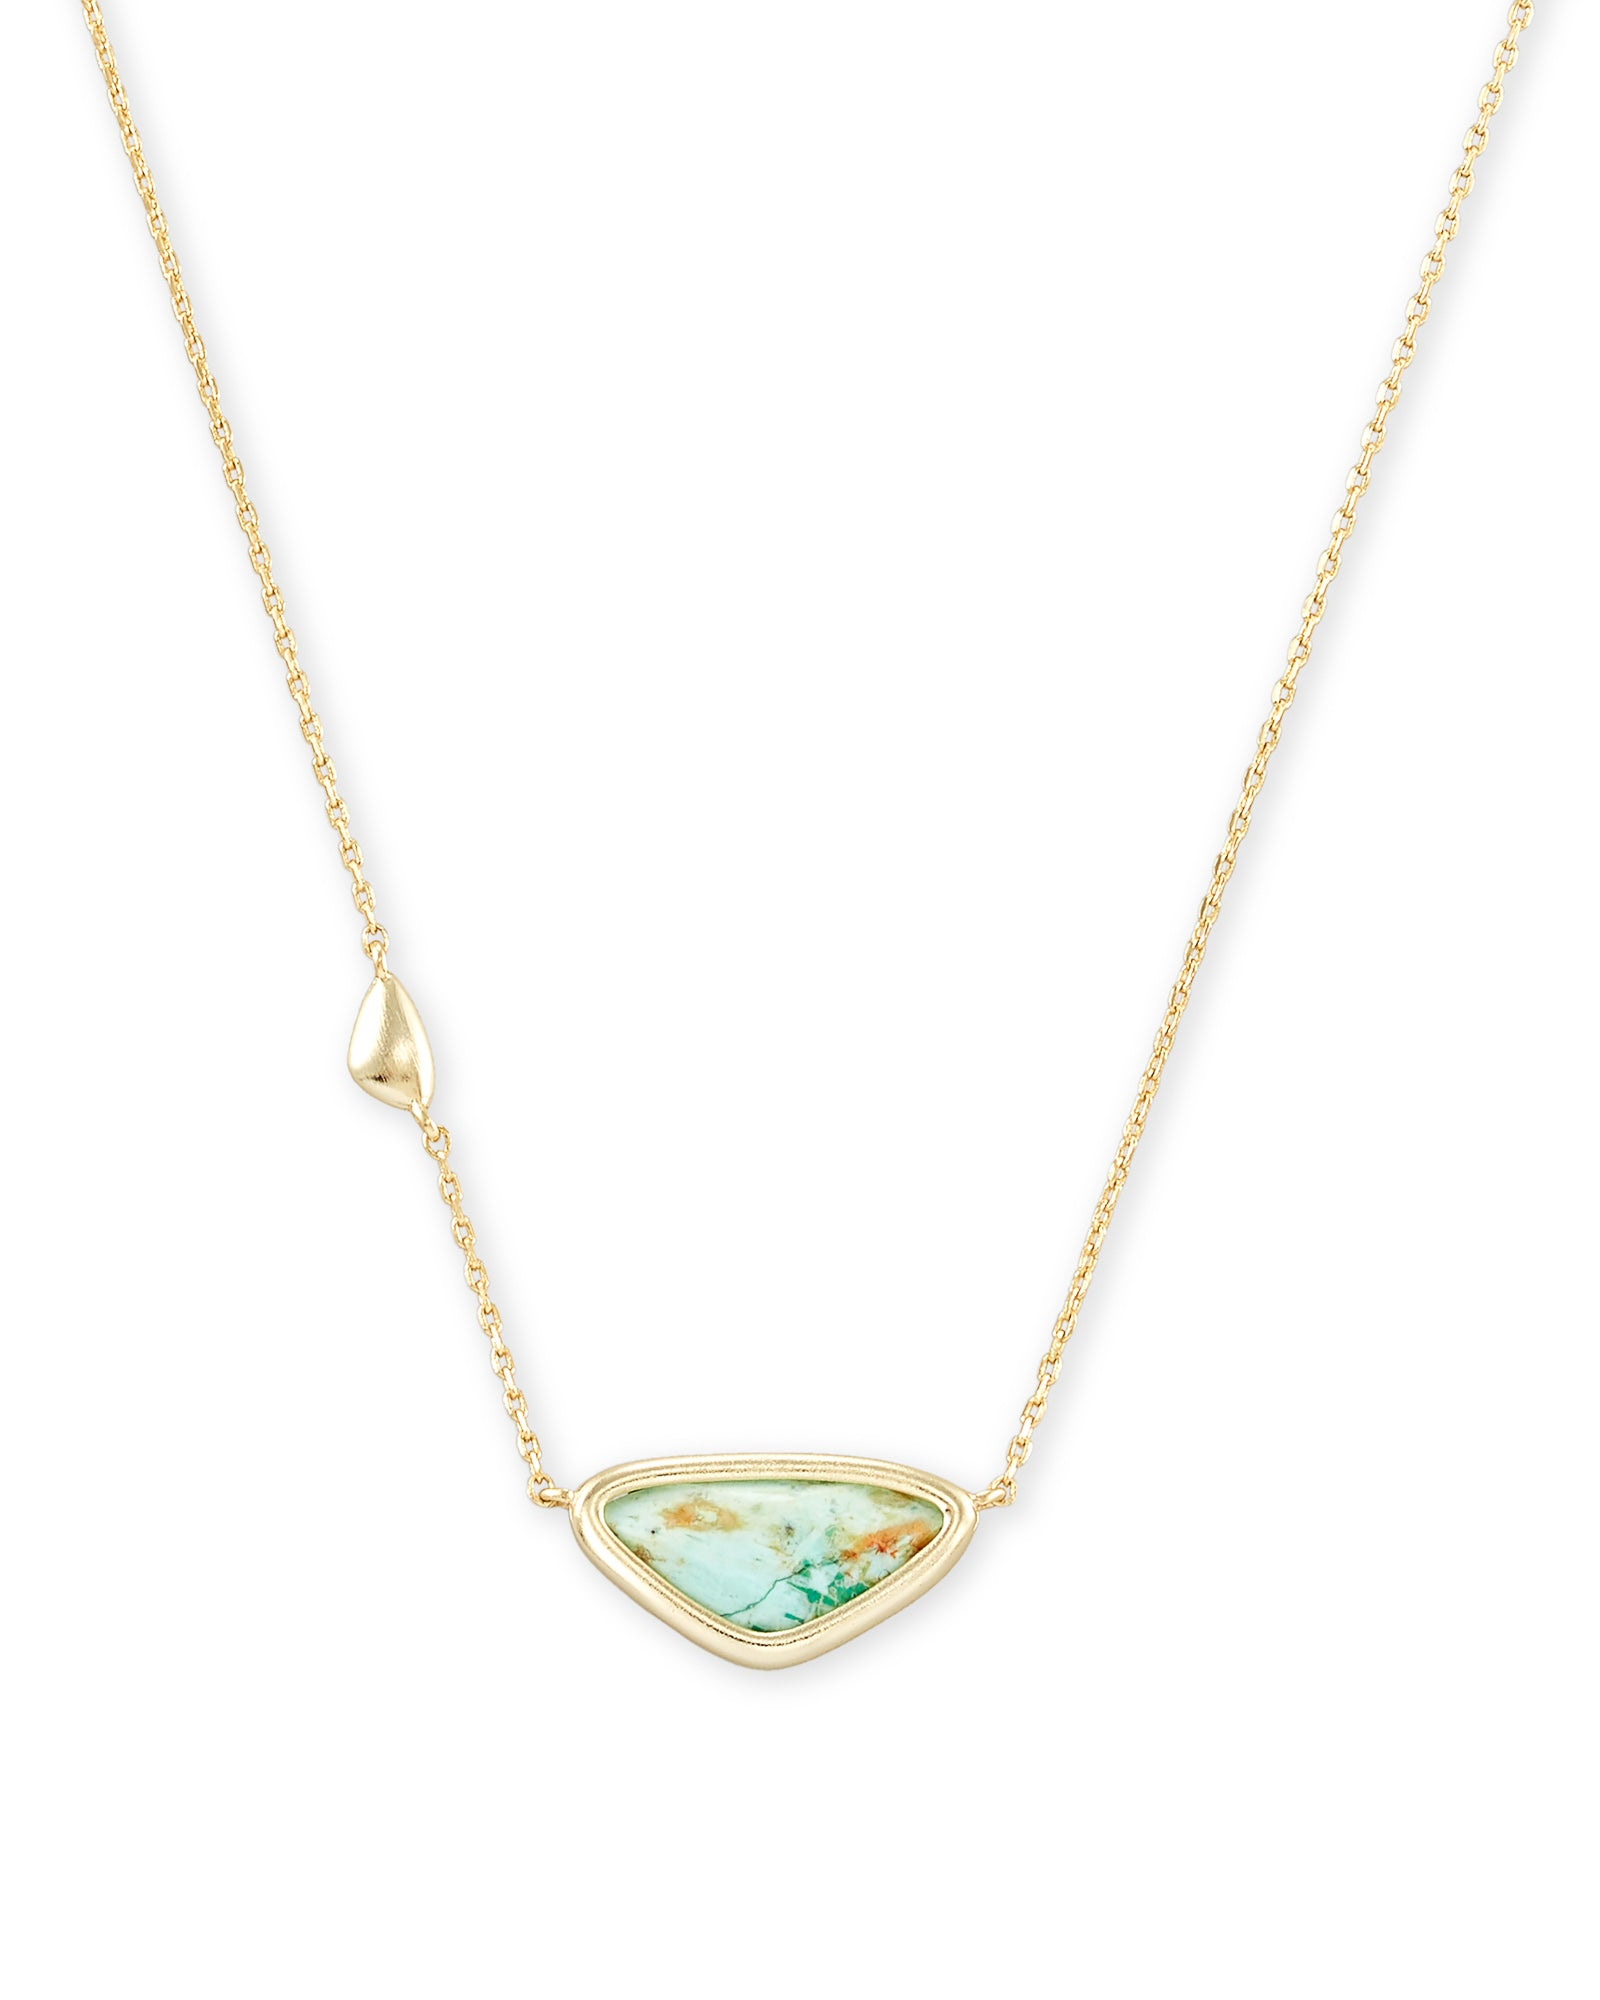 Margot Gold Pendant Necklace In Sea Green Chrysocolla